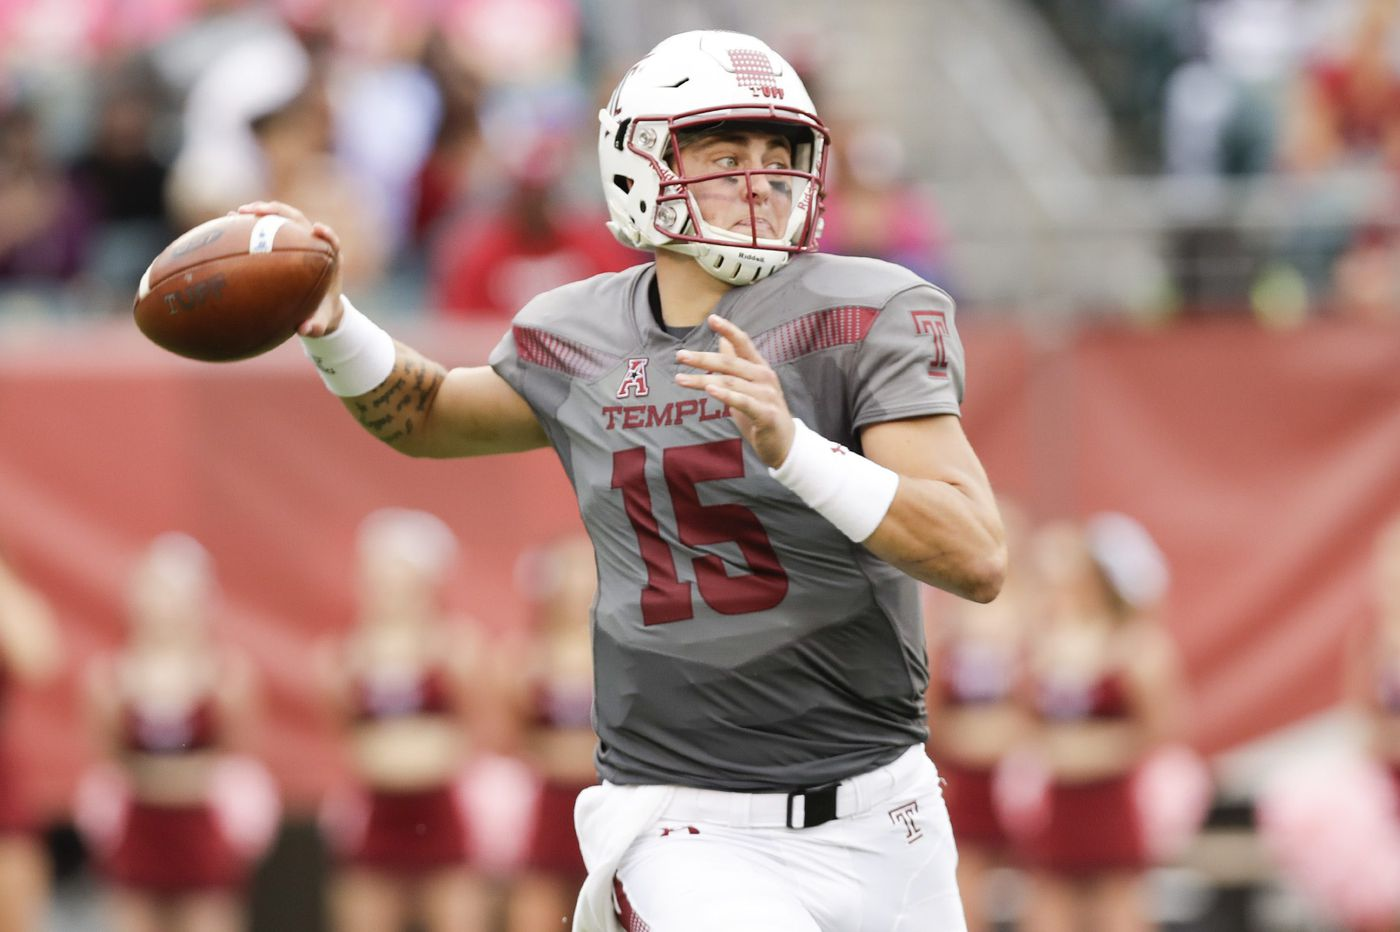 Temple-USF football prediction: Stopping the run will be a key for the Owls